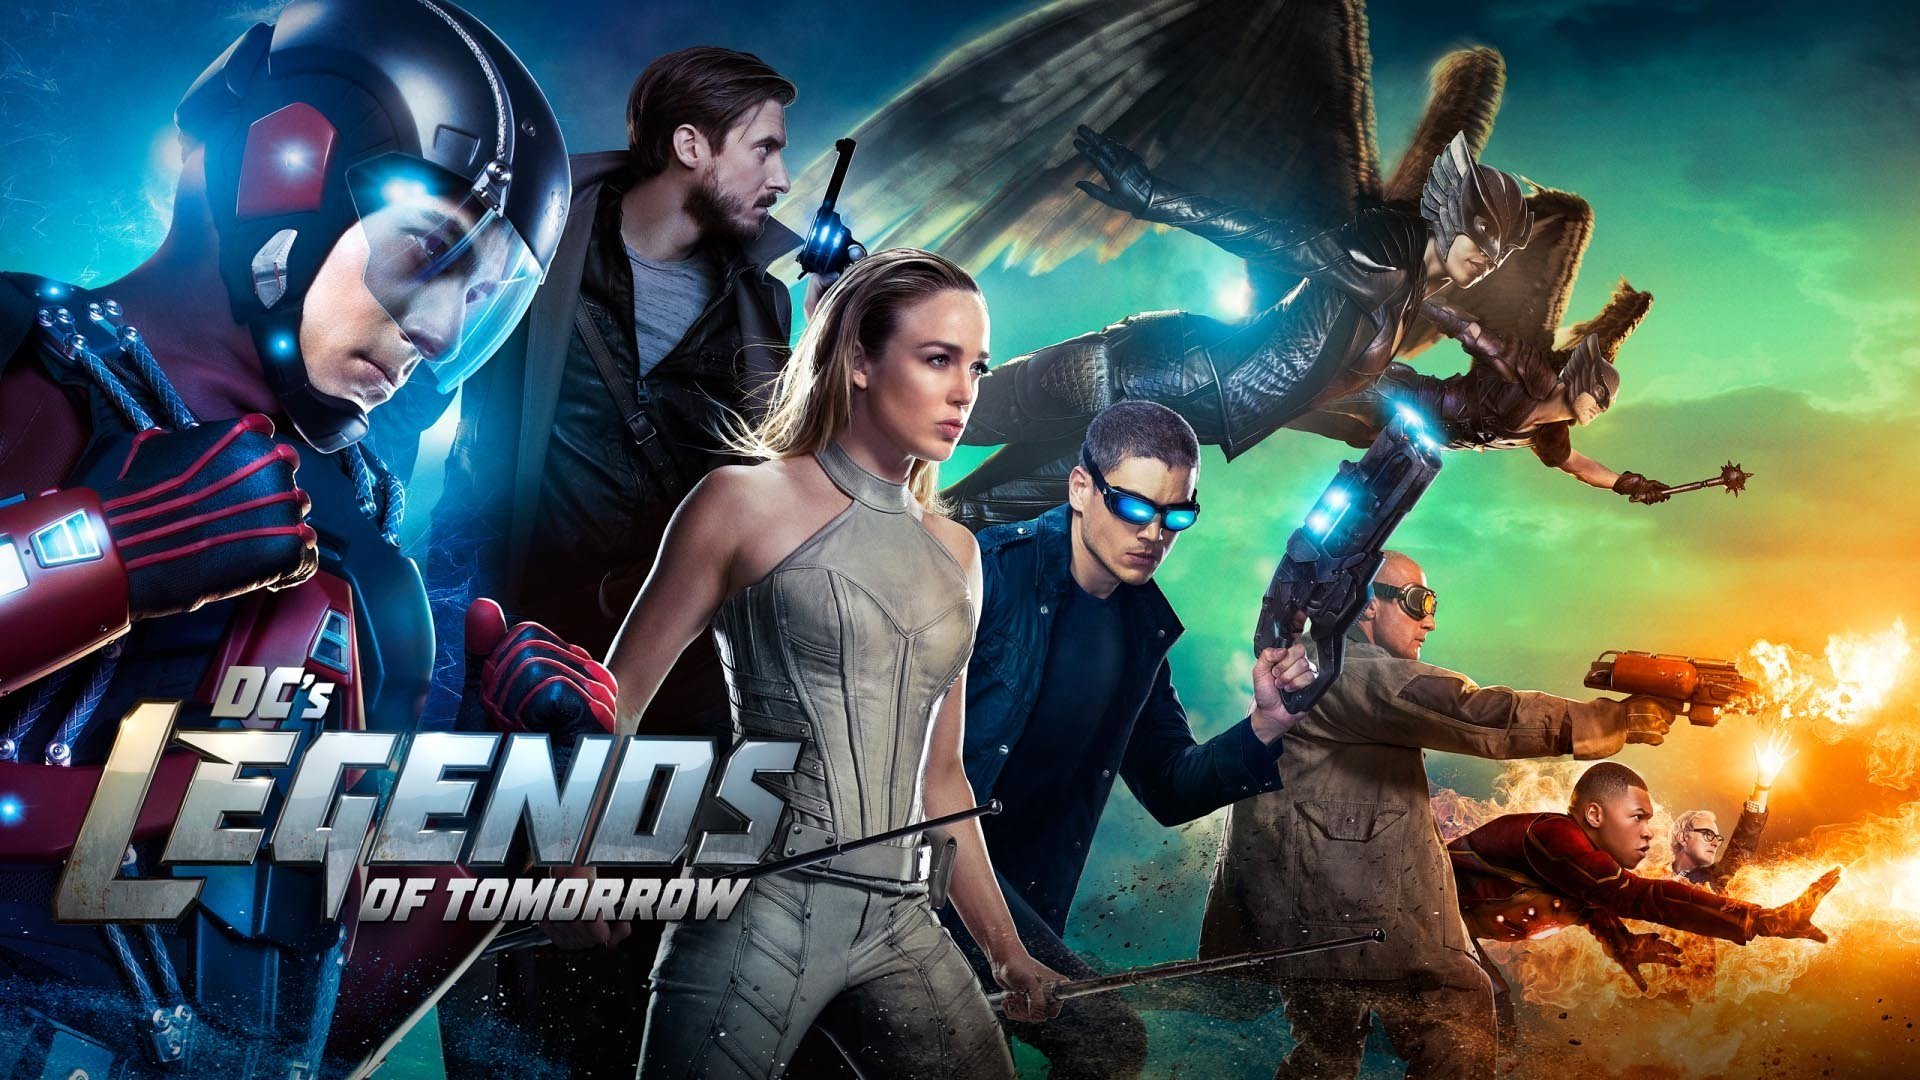 'Legends of Tomorrow' Season 3: Citizen Cold and John Constantine romance  teased